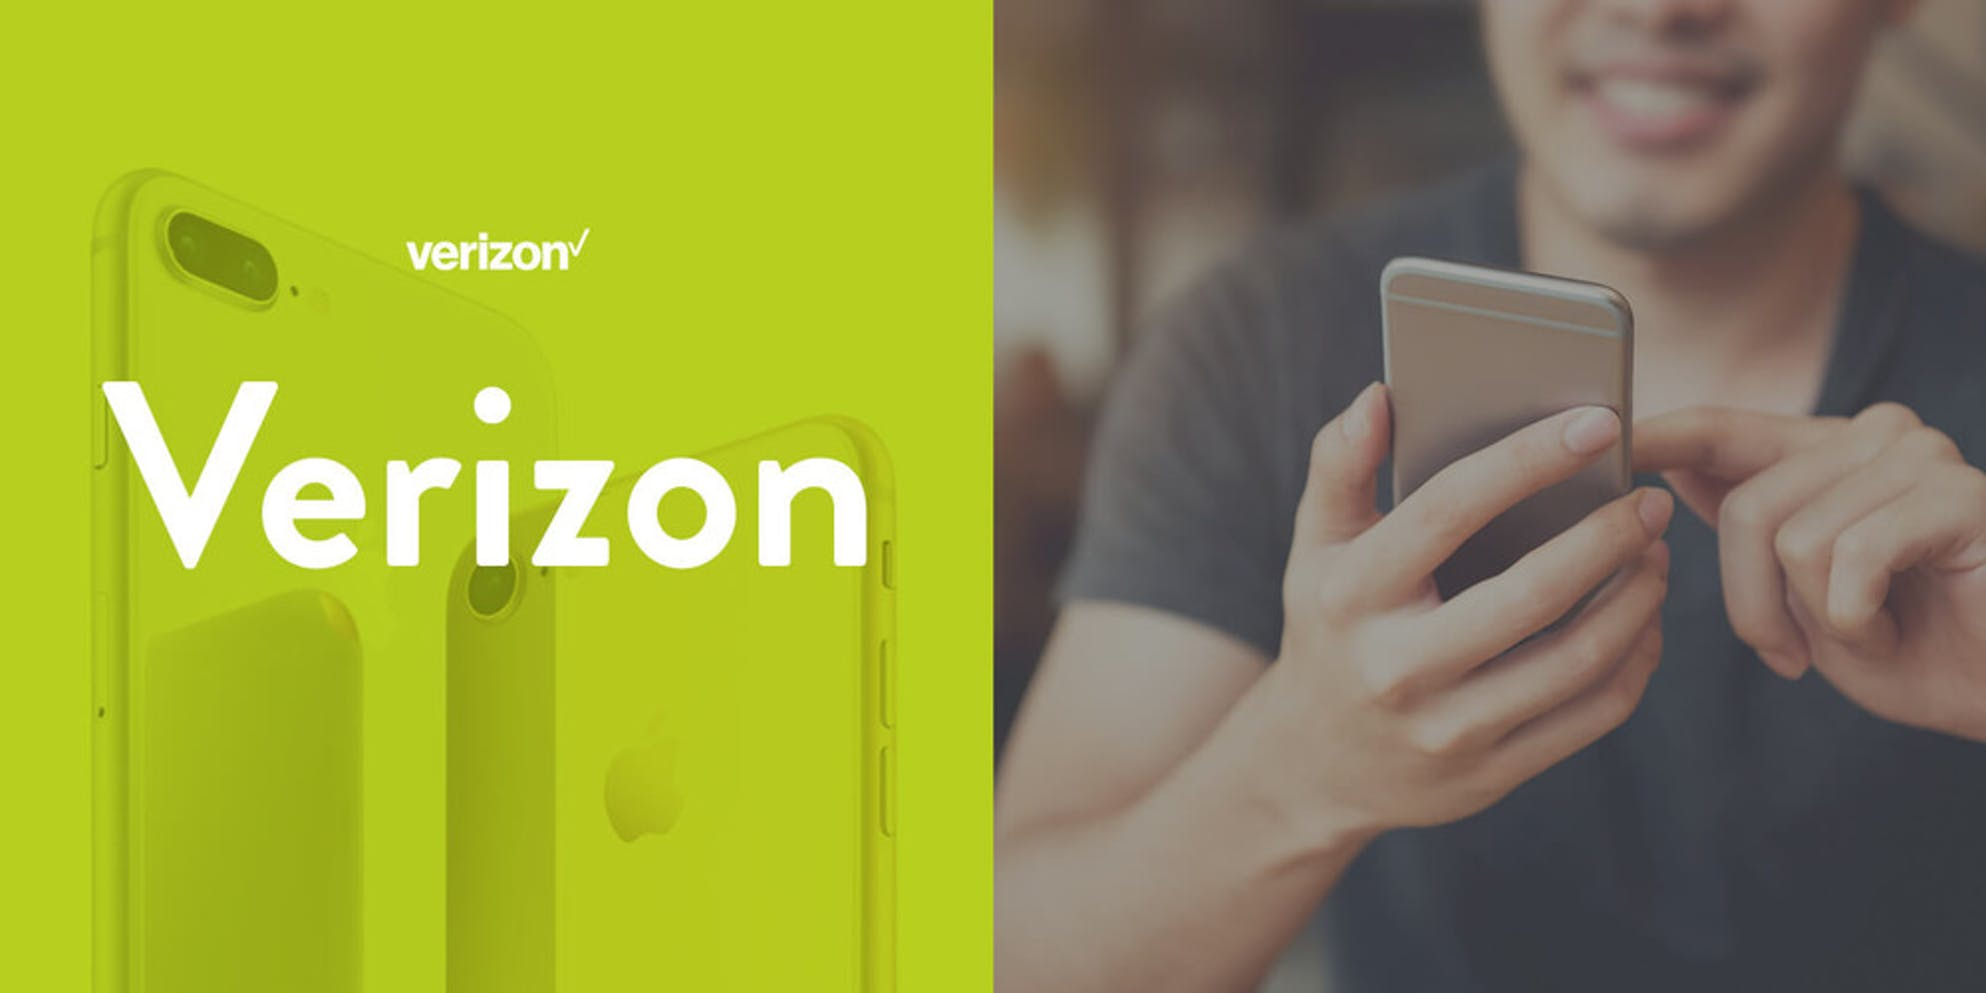 How to Reduce Verizon Cell Phone Bill